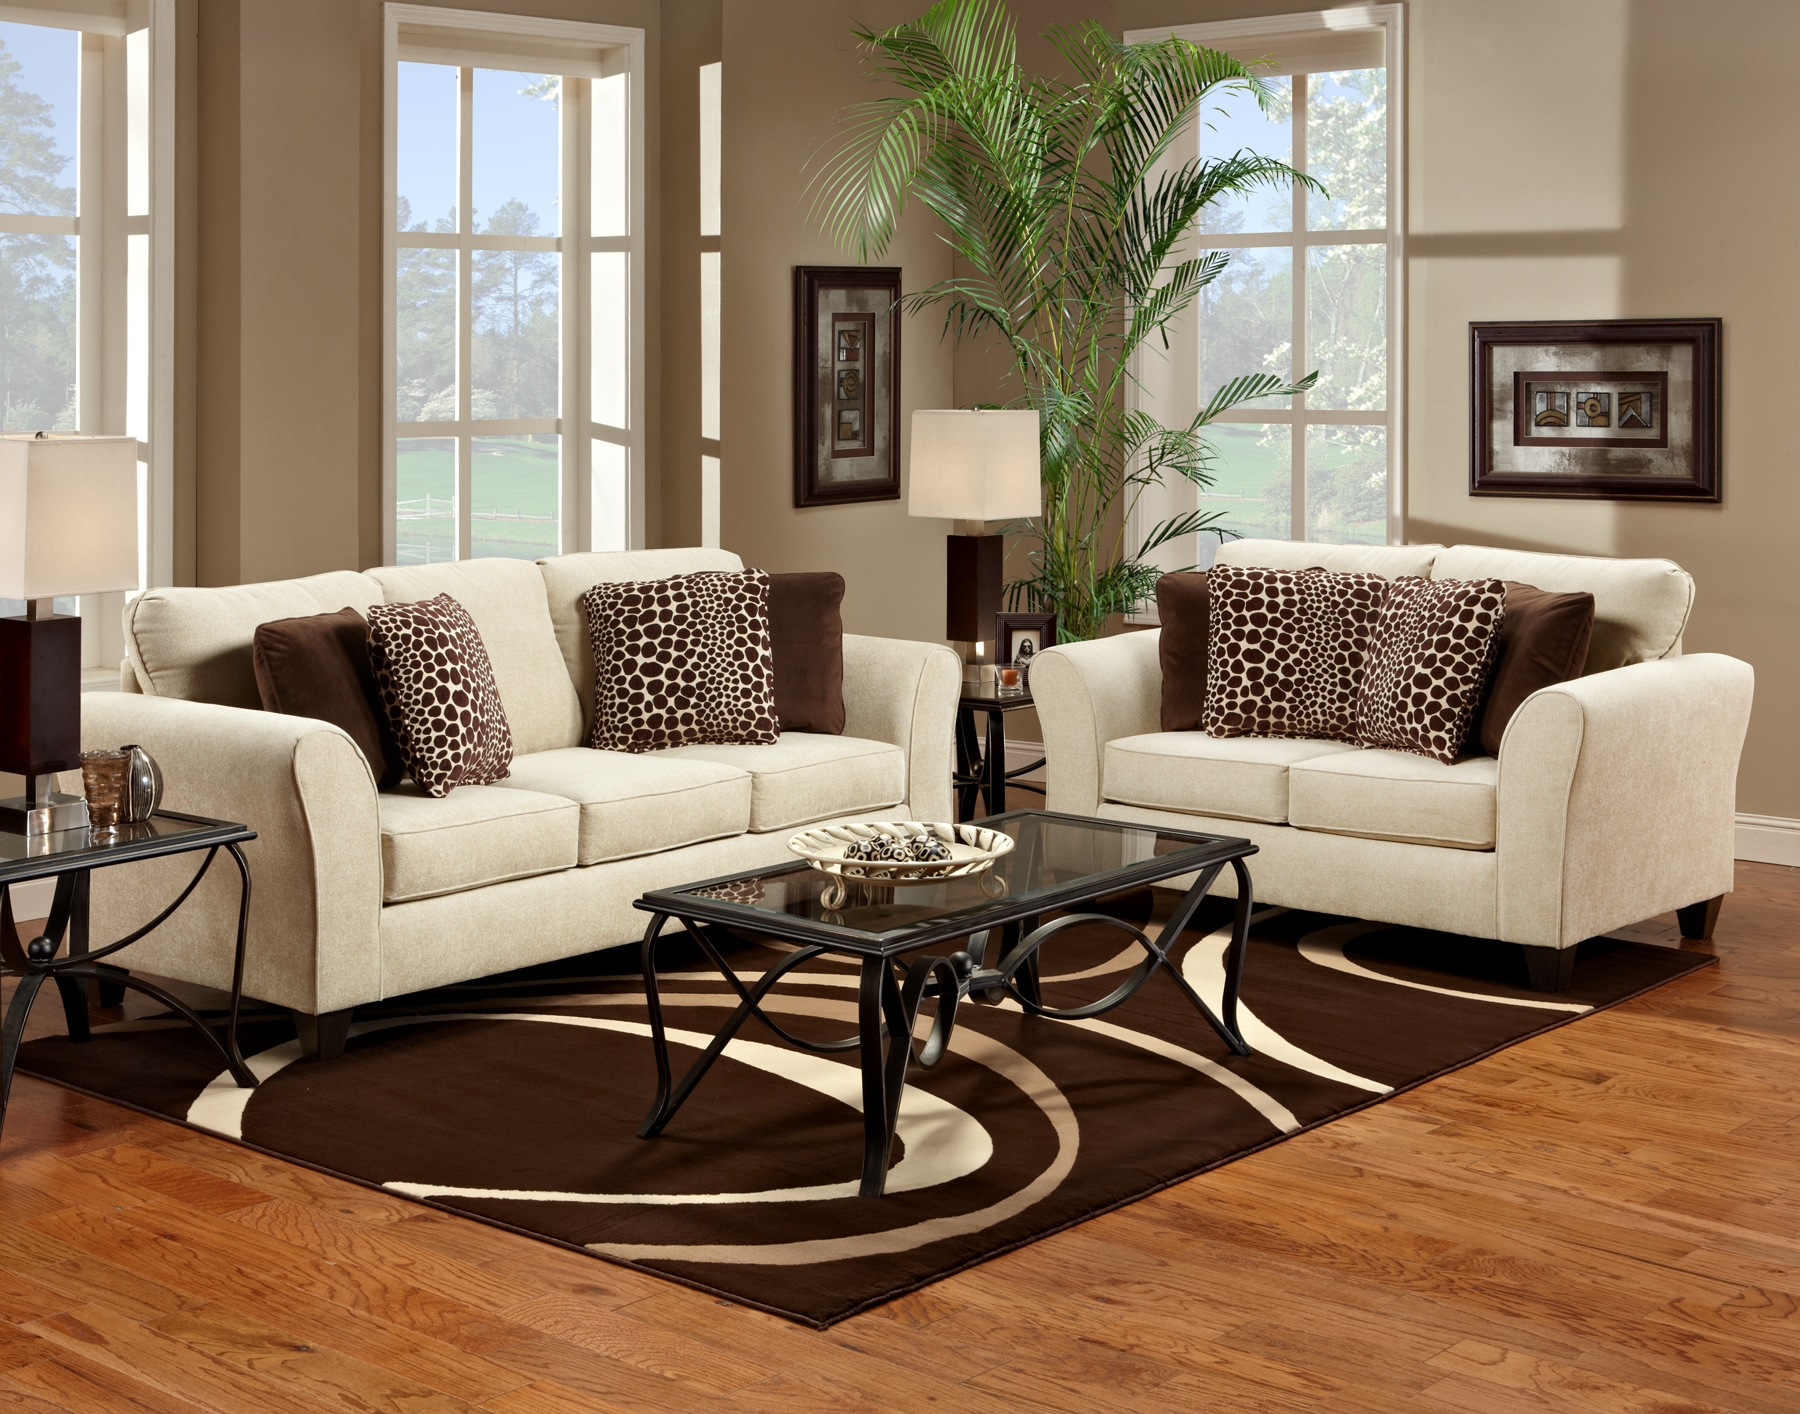 Buy cheap affordable furniture here